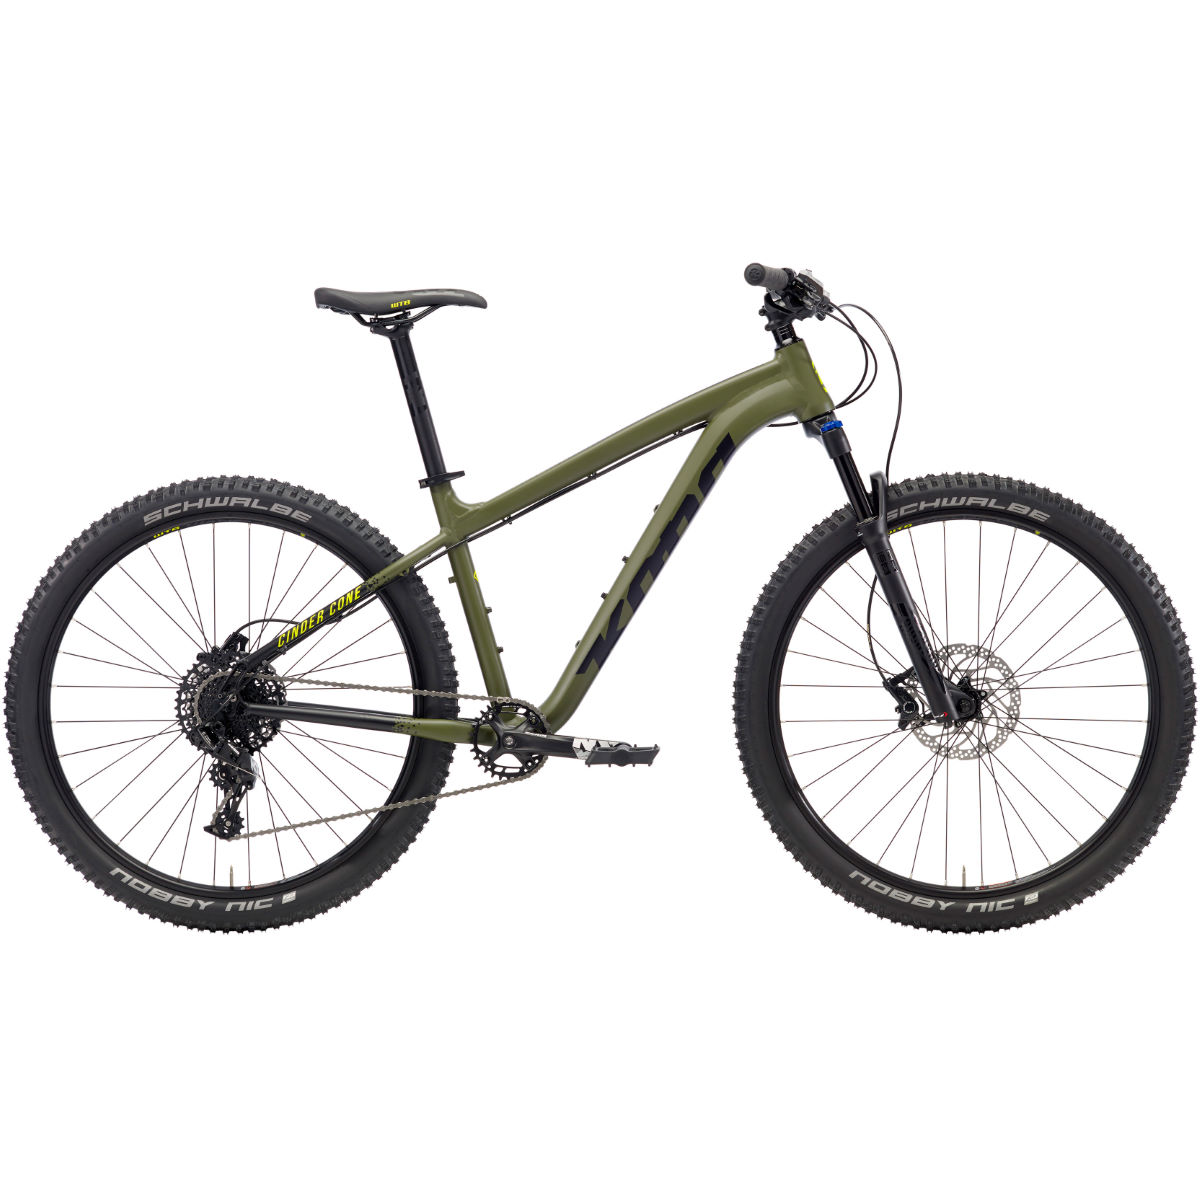 VTT semi-rigide Kona Cinder Cone (2018) - Small Stock Bike